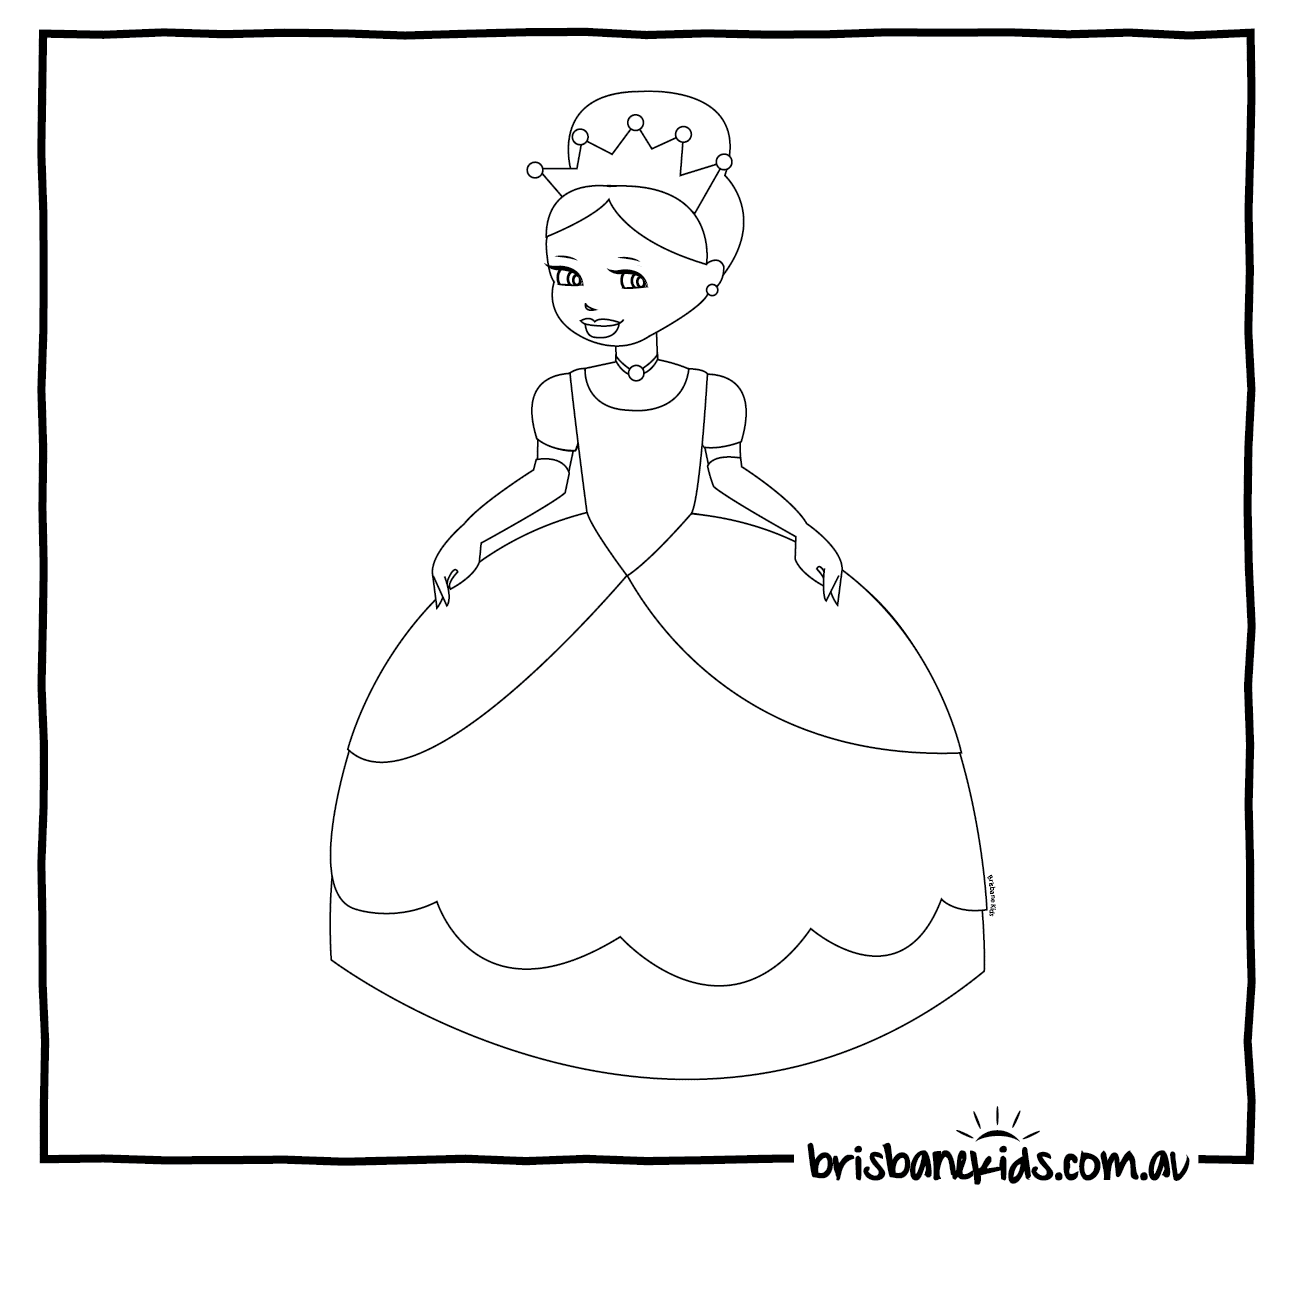 princess templates to color get this printable disney princess coloring pages online templates princess color to